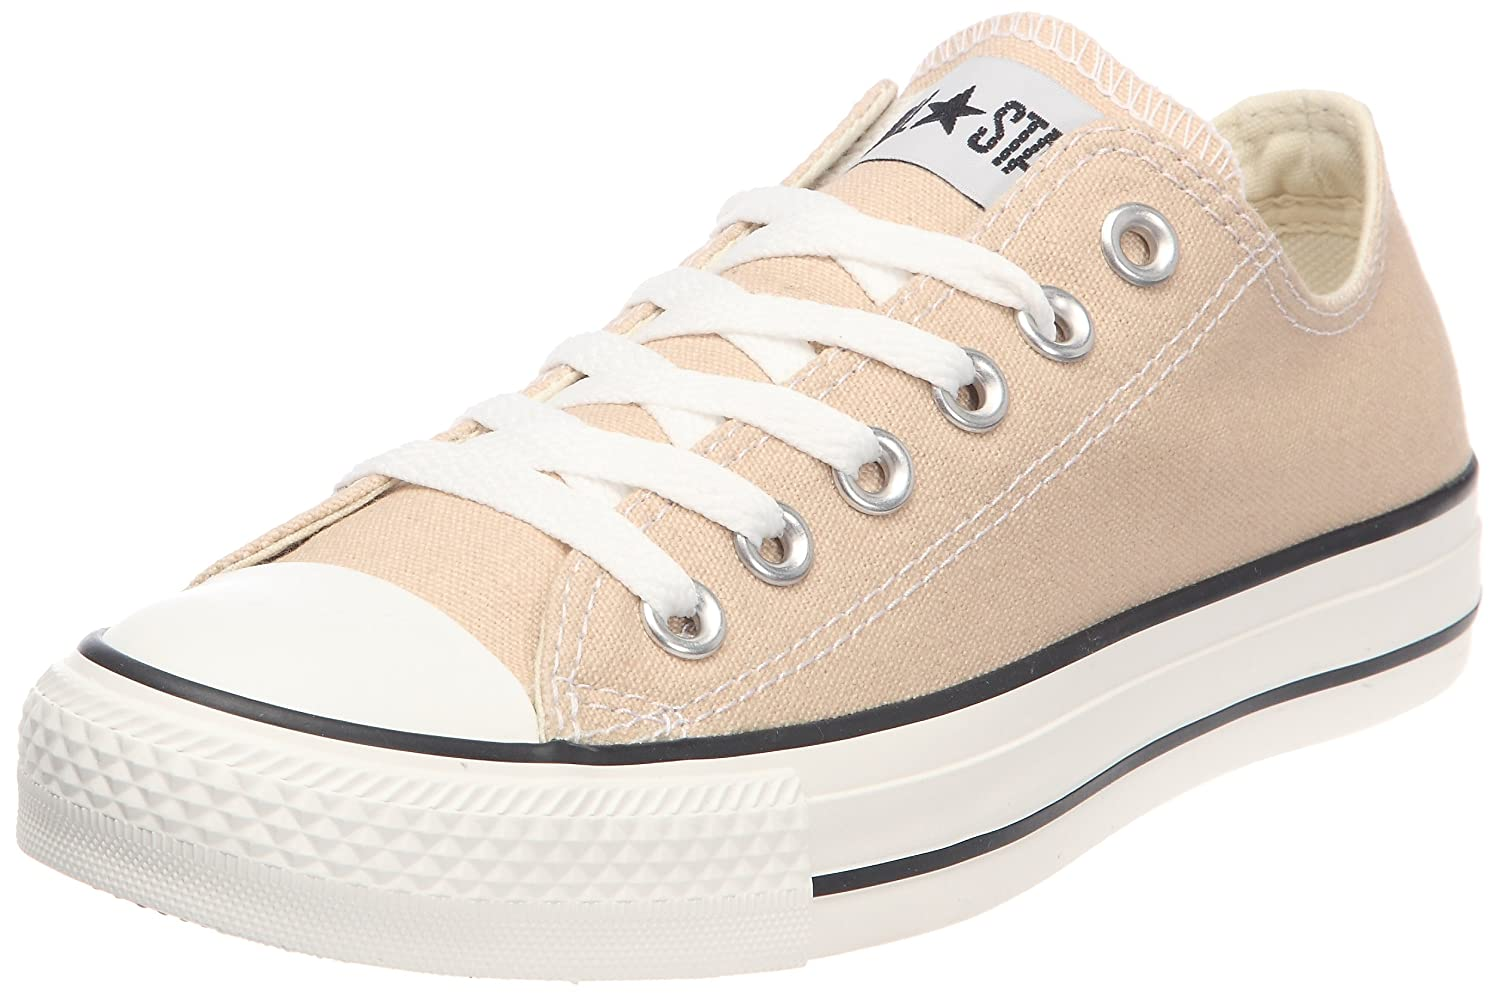 Converse Ctas 19320 mixte Core Hi, Baskets mode Converse mixte adulte d930f0e - boatplans.space